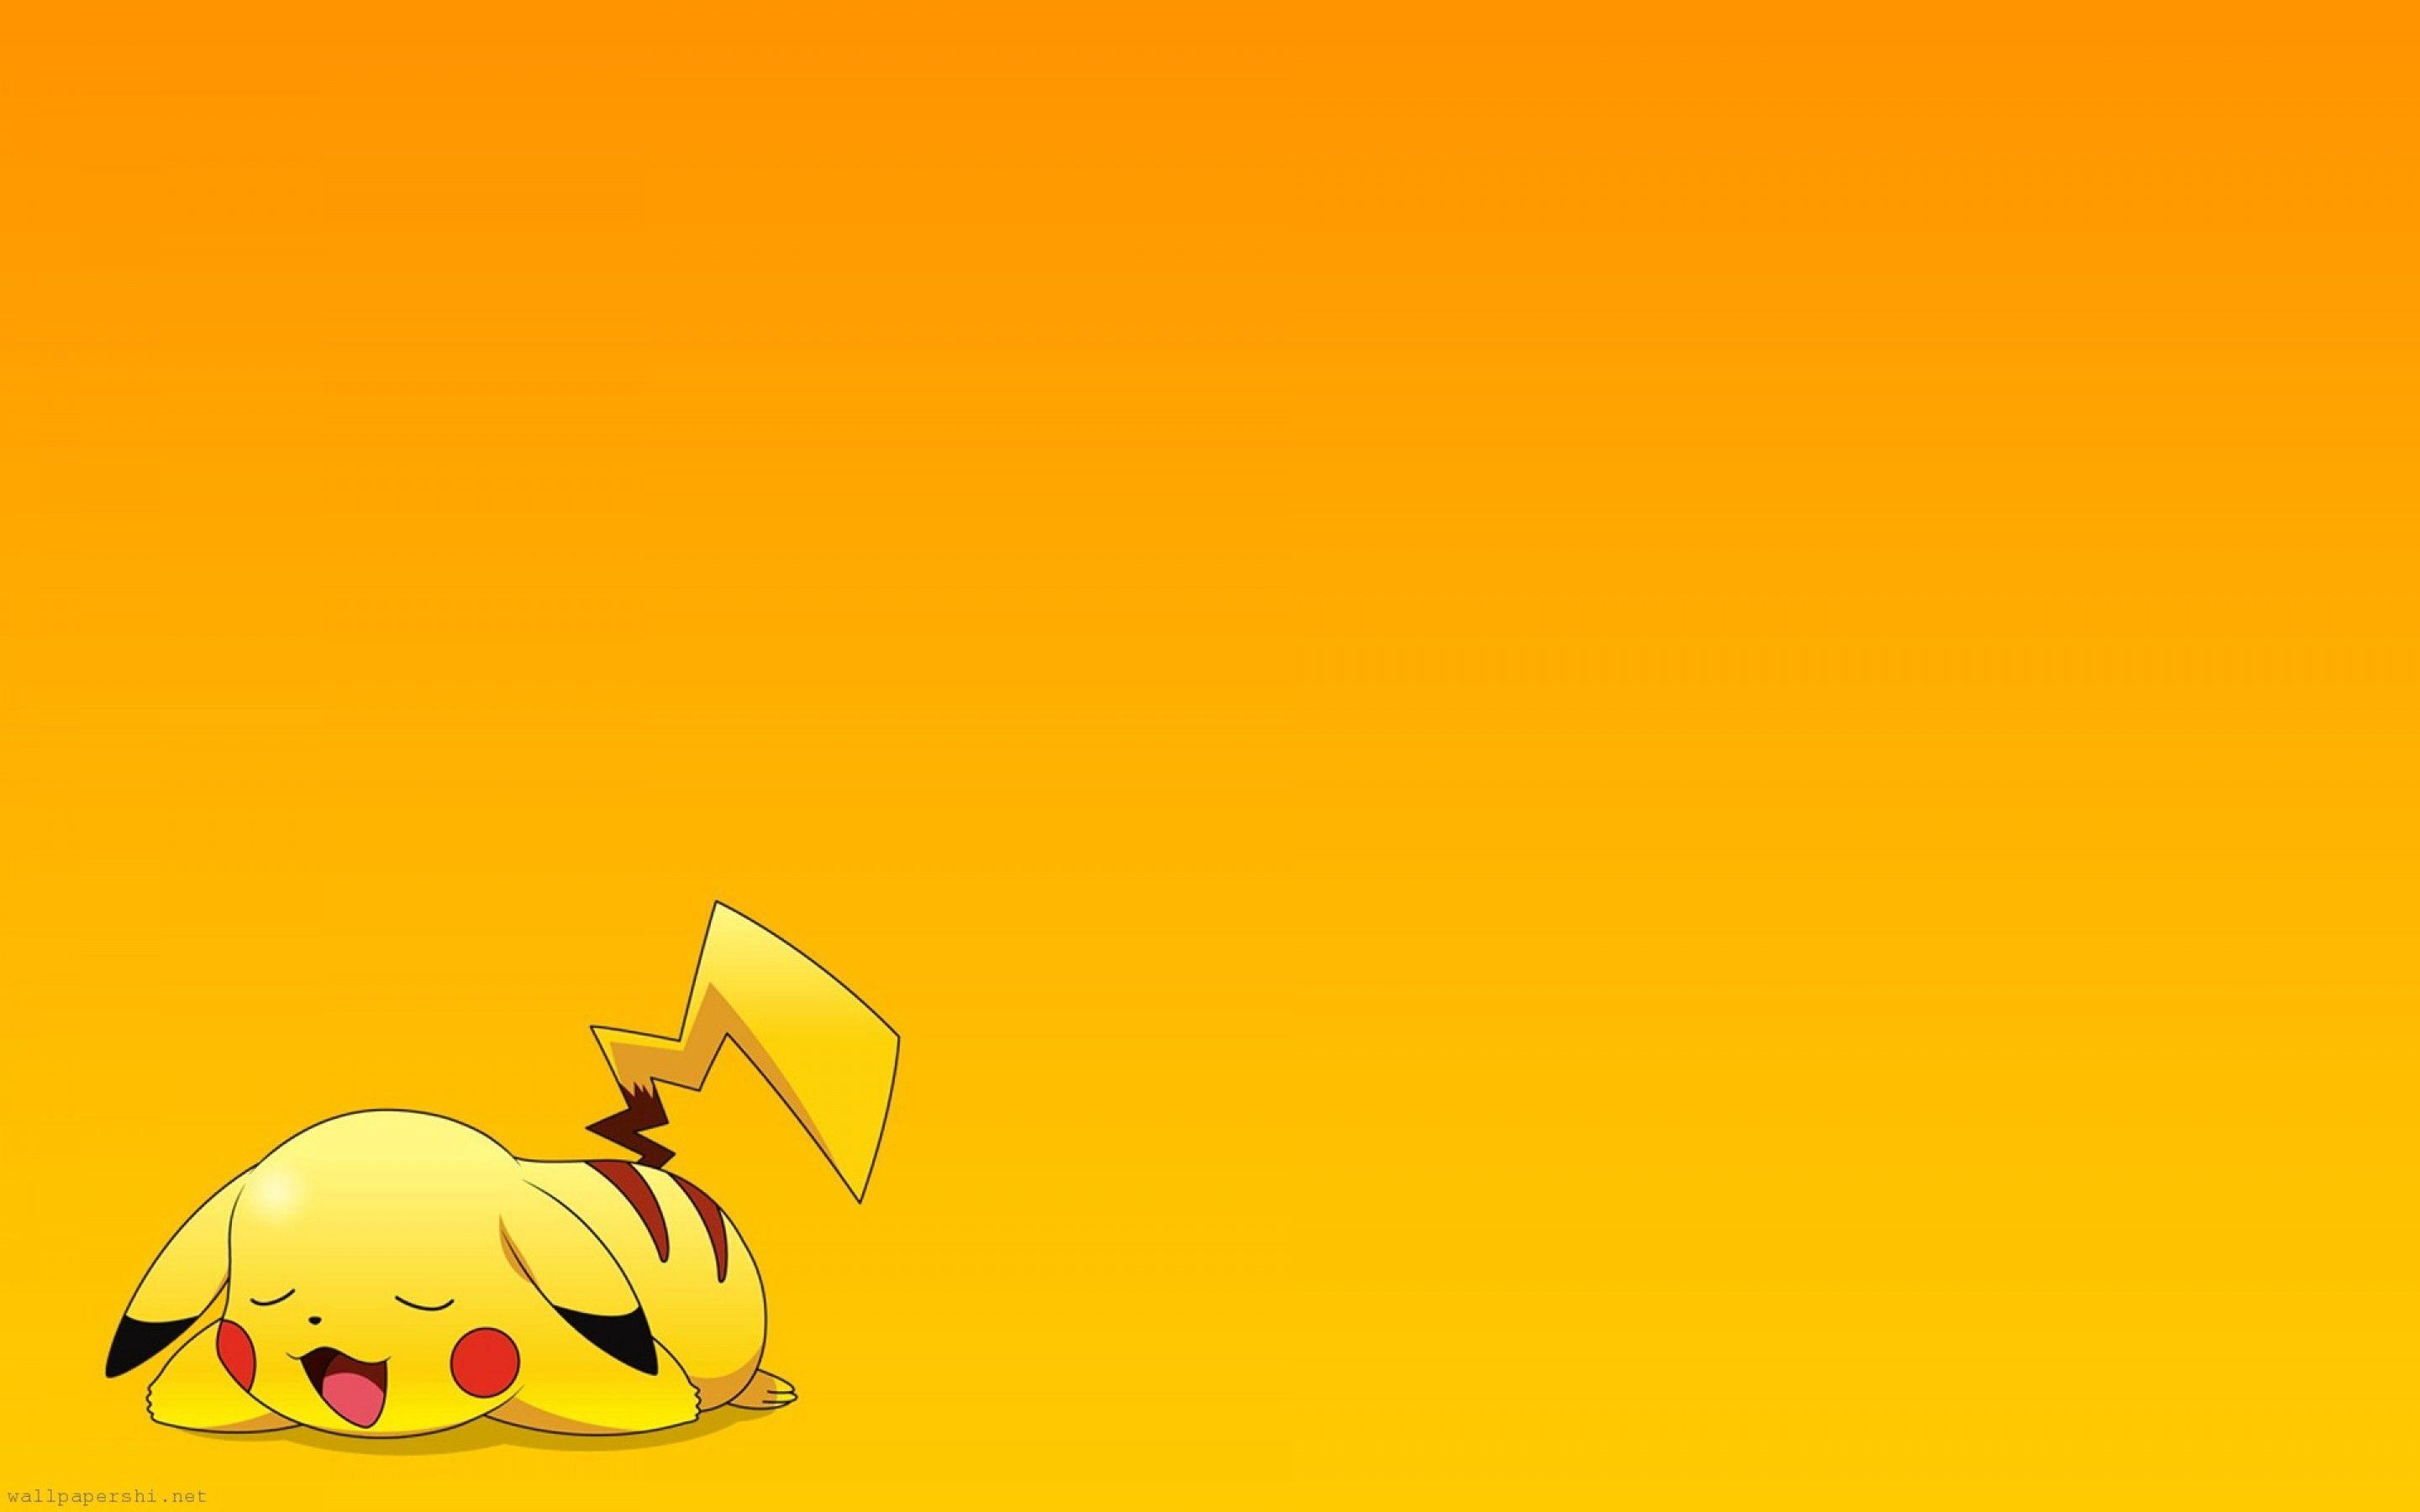 Pokemon Pikachu Wallpapers - Full HD wallpaper search